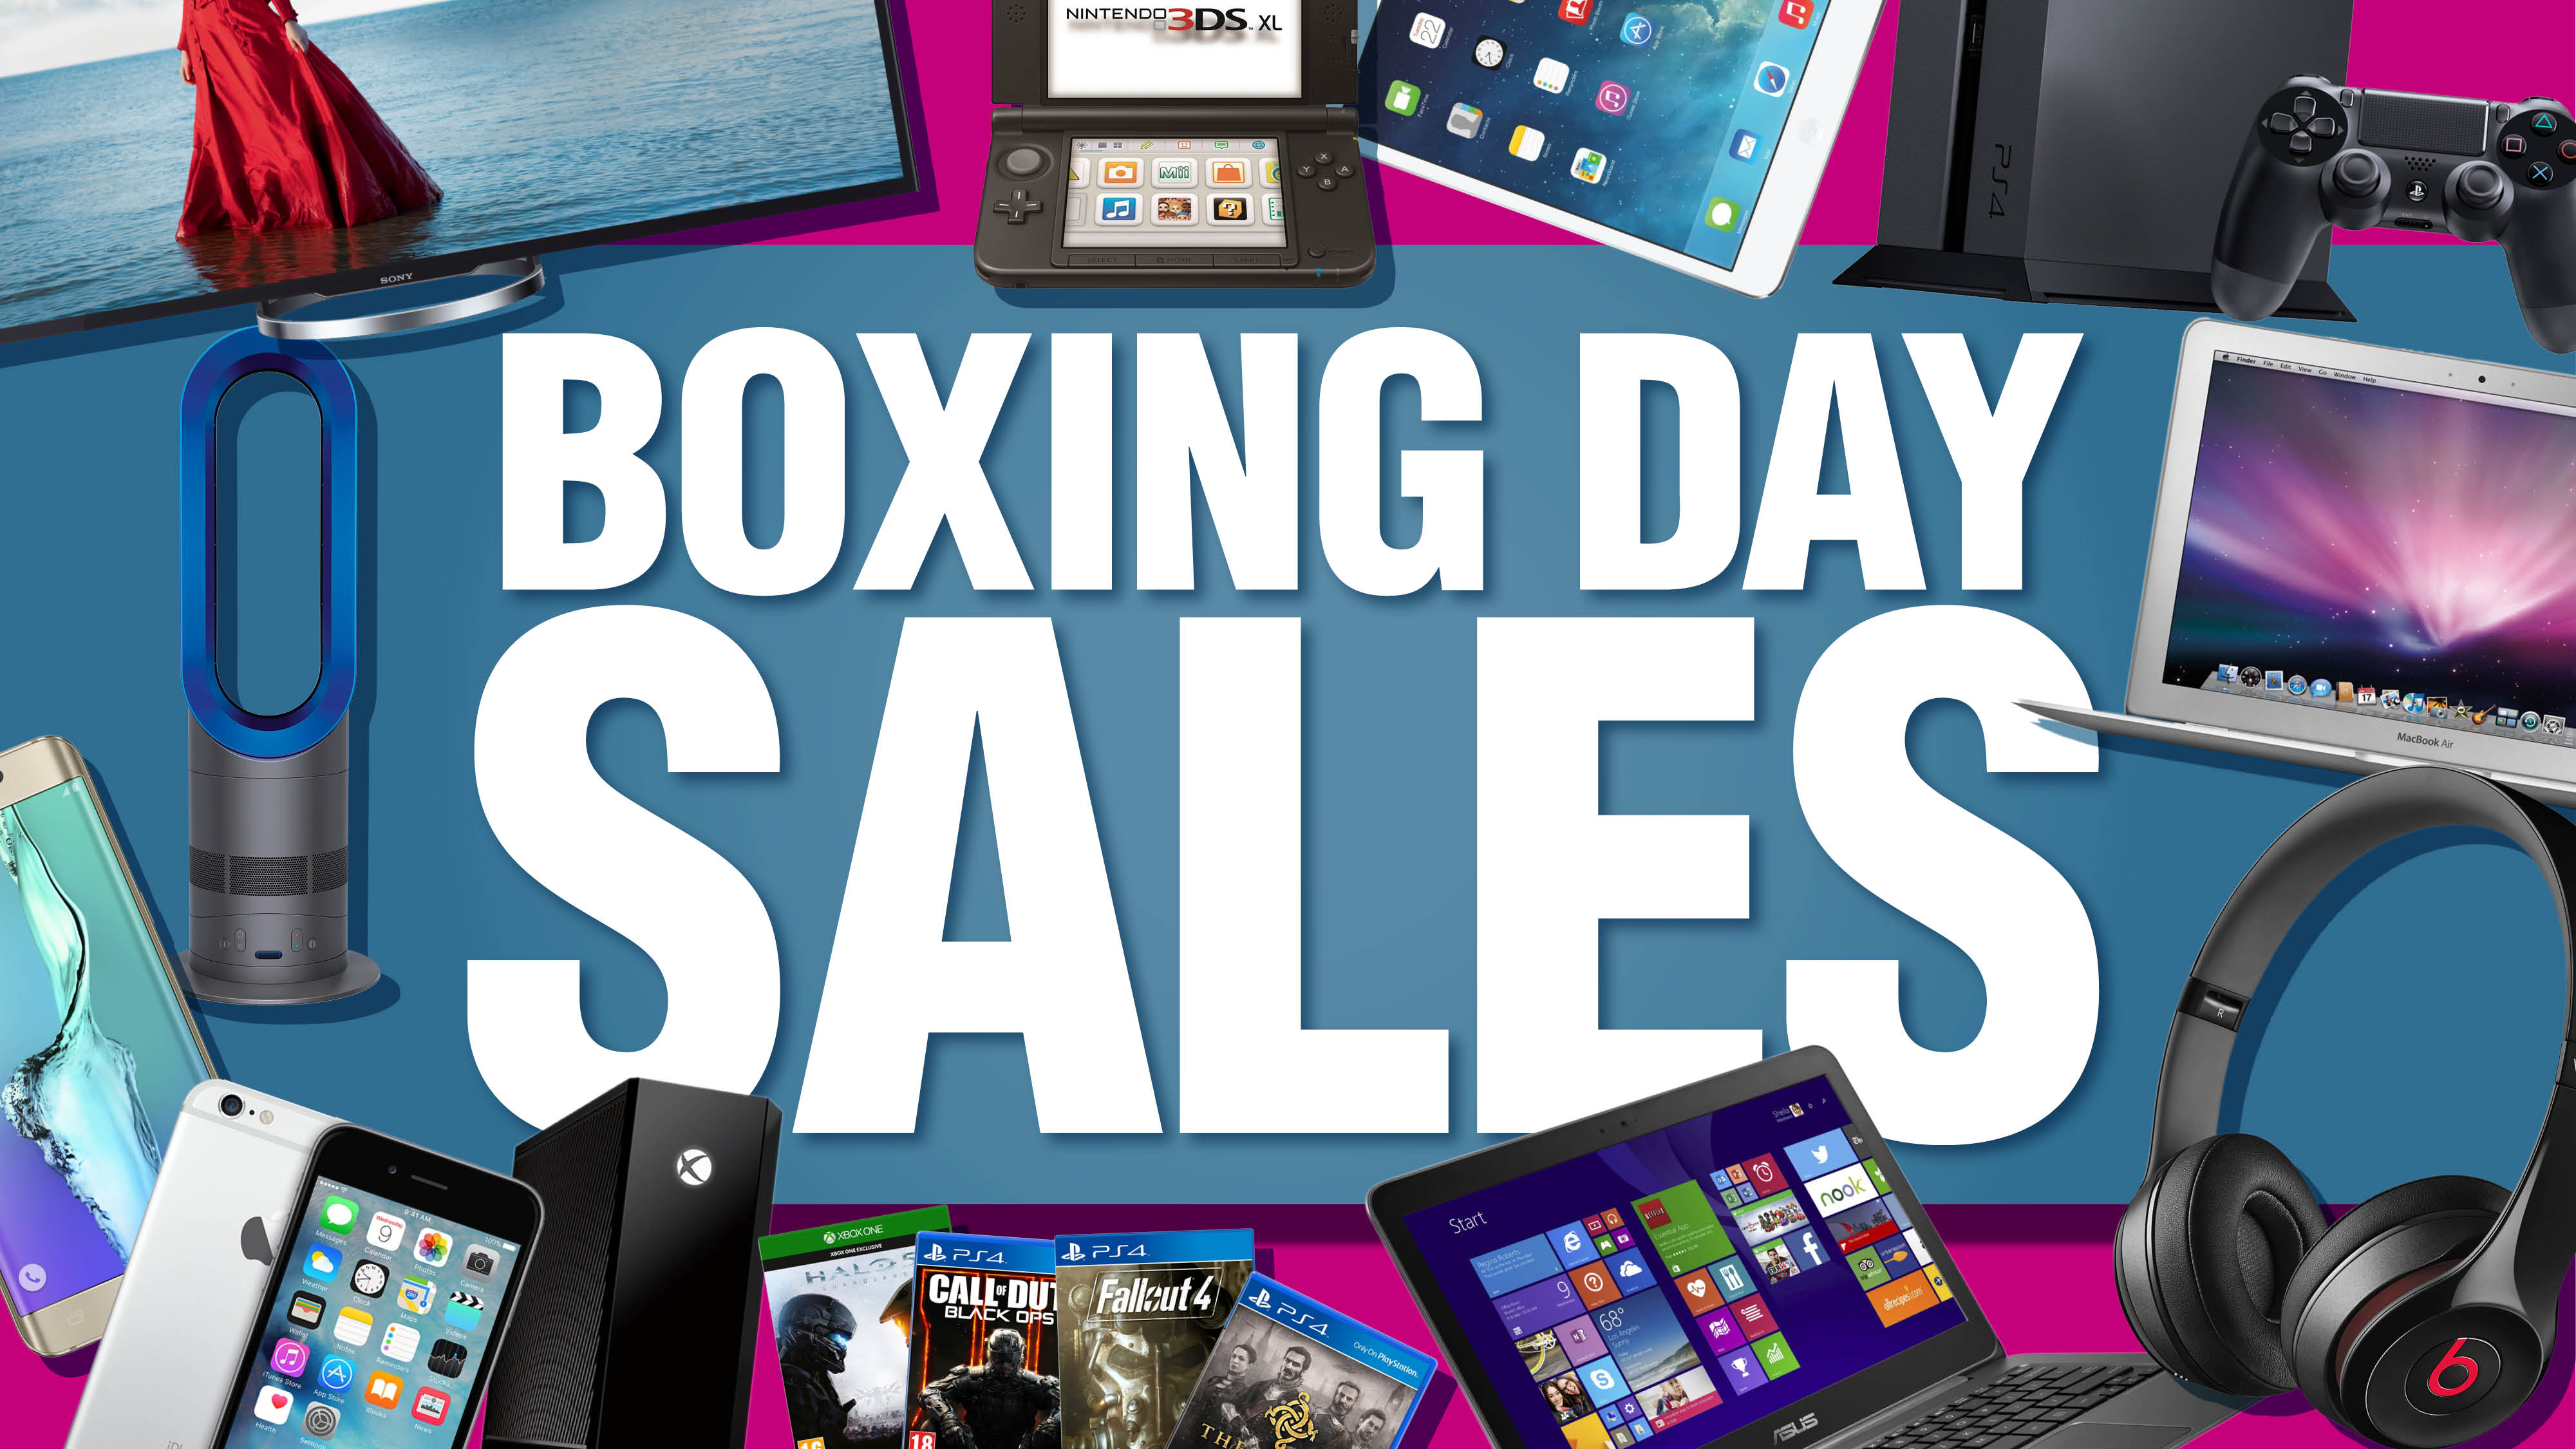 Best online Boxing Day sales in Sydney September The way to find the best online Boxing Day sales in Sydney is by shopping around. Take a look at some of your favourite online stores and see if they are having a sale, or if their sale has already started.